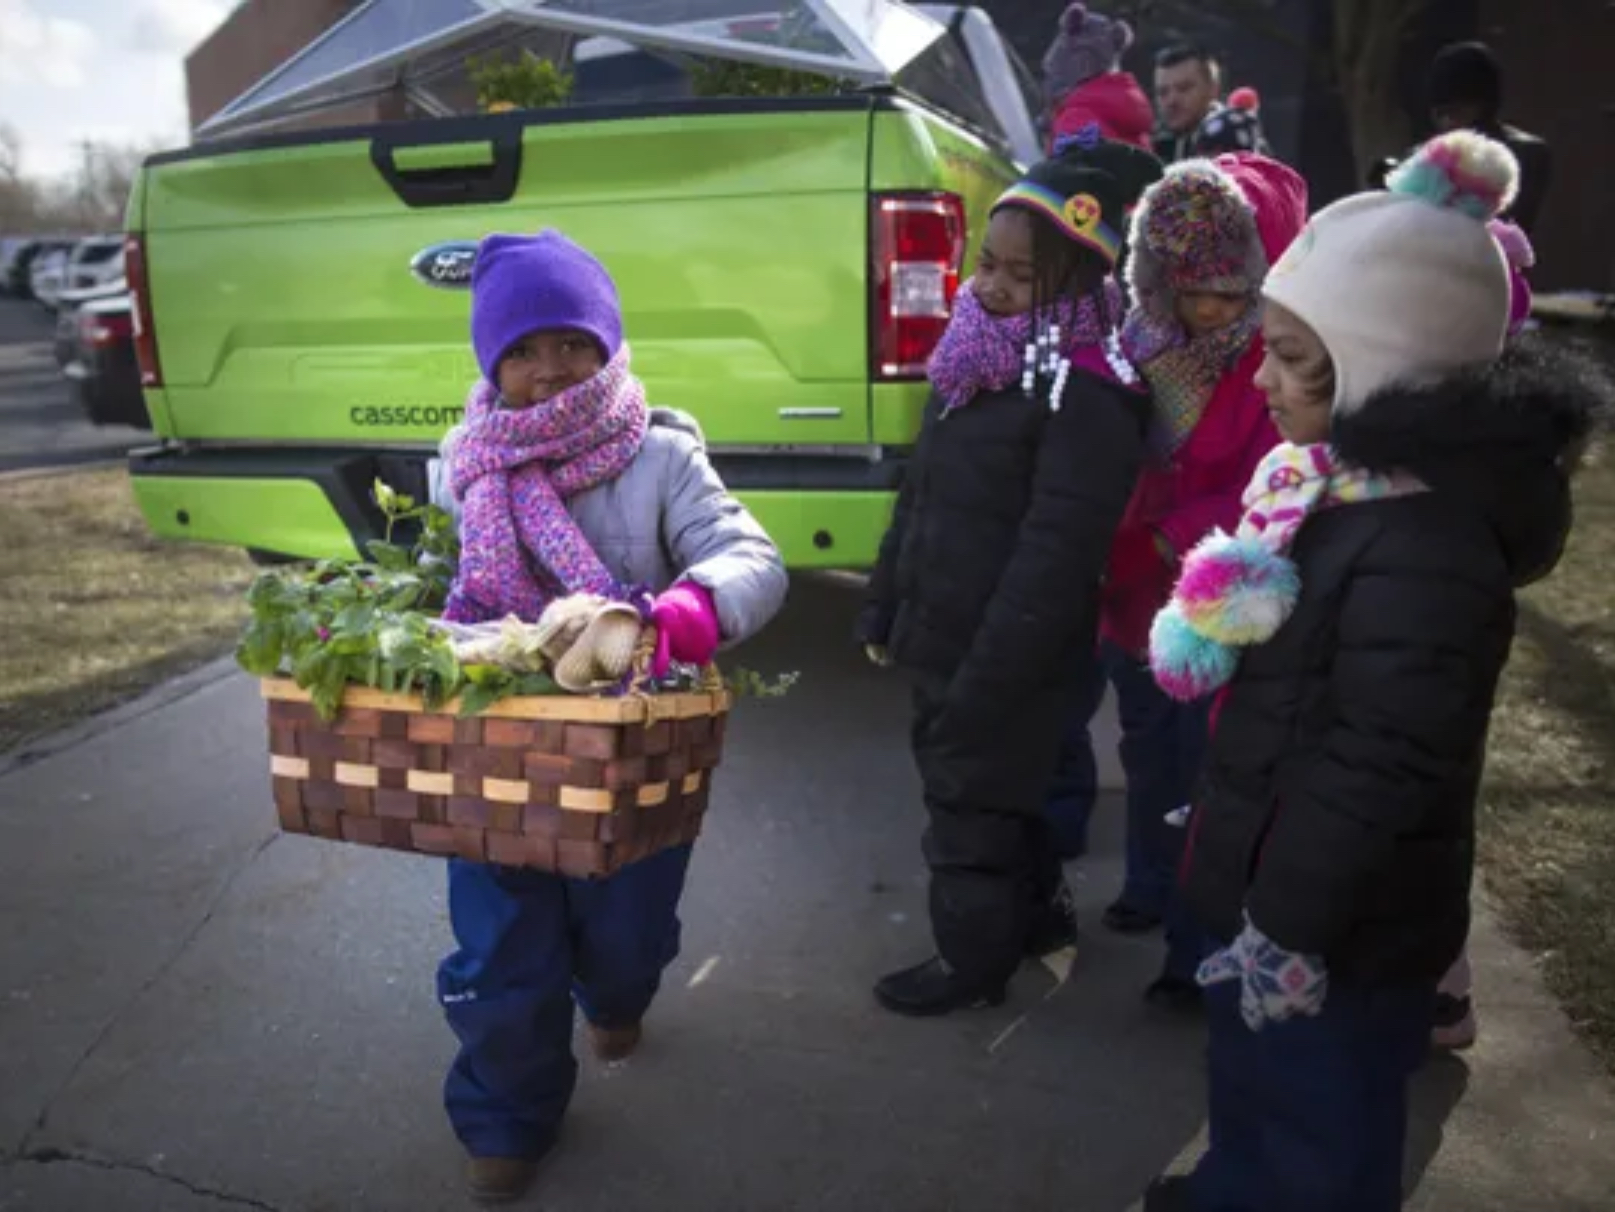 A child carries produce and plants from a Cass Community Social Services F-150 at a local Detroit school